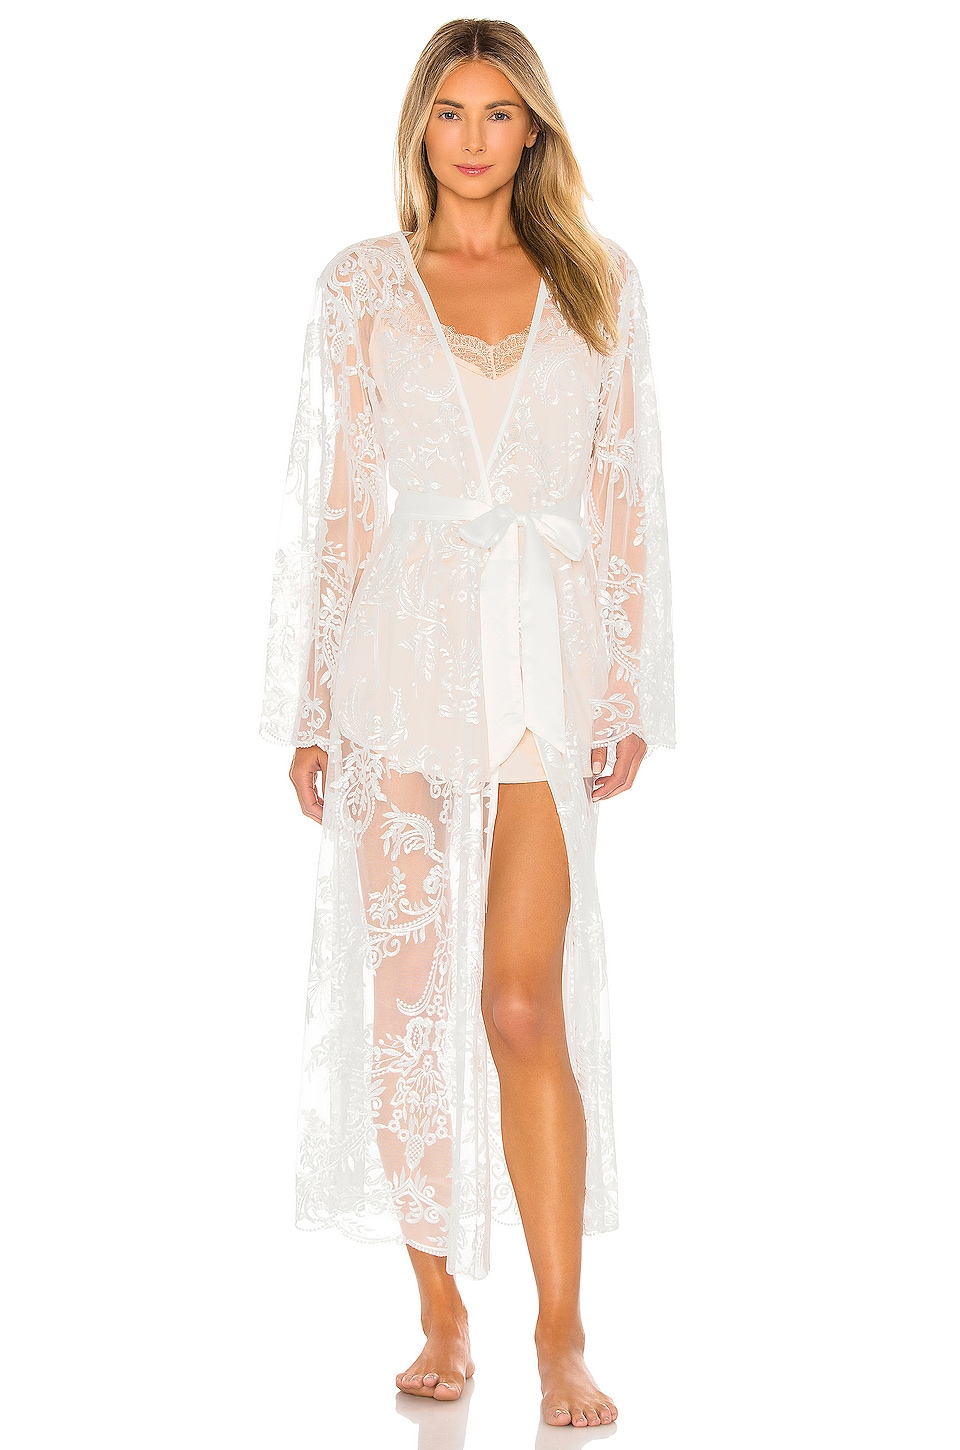 homebodii Madeleine Long Lace Robe in White